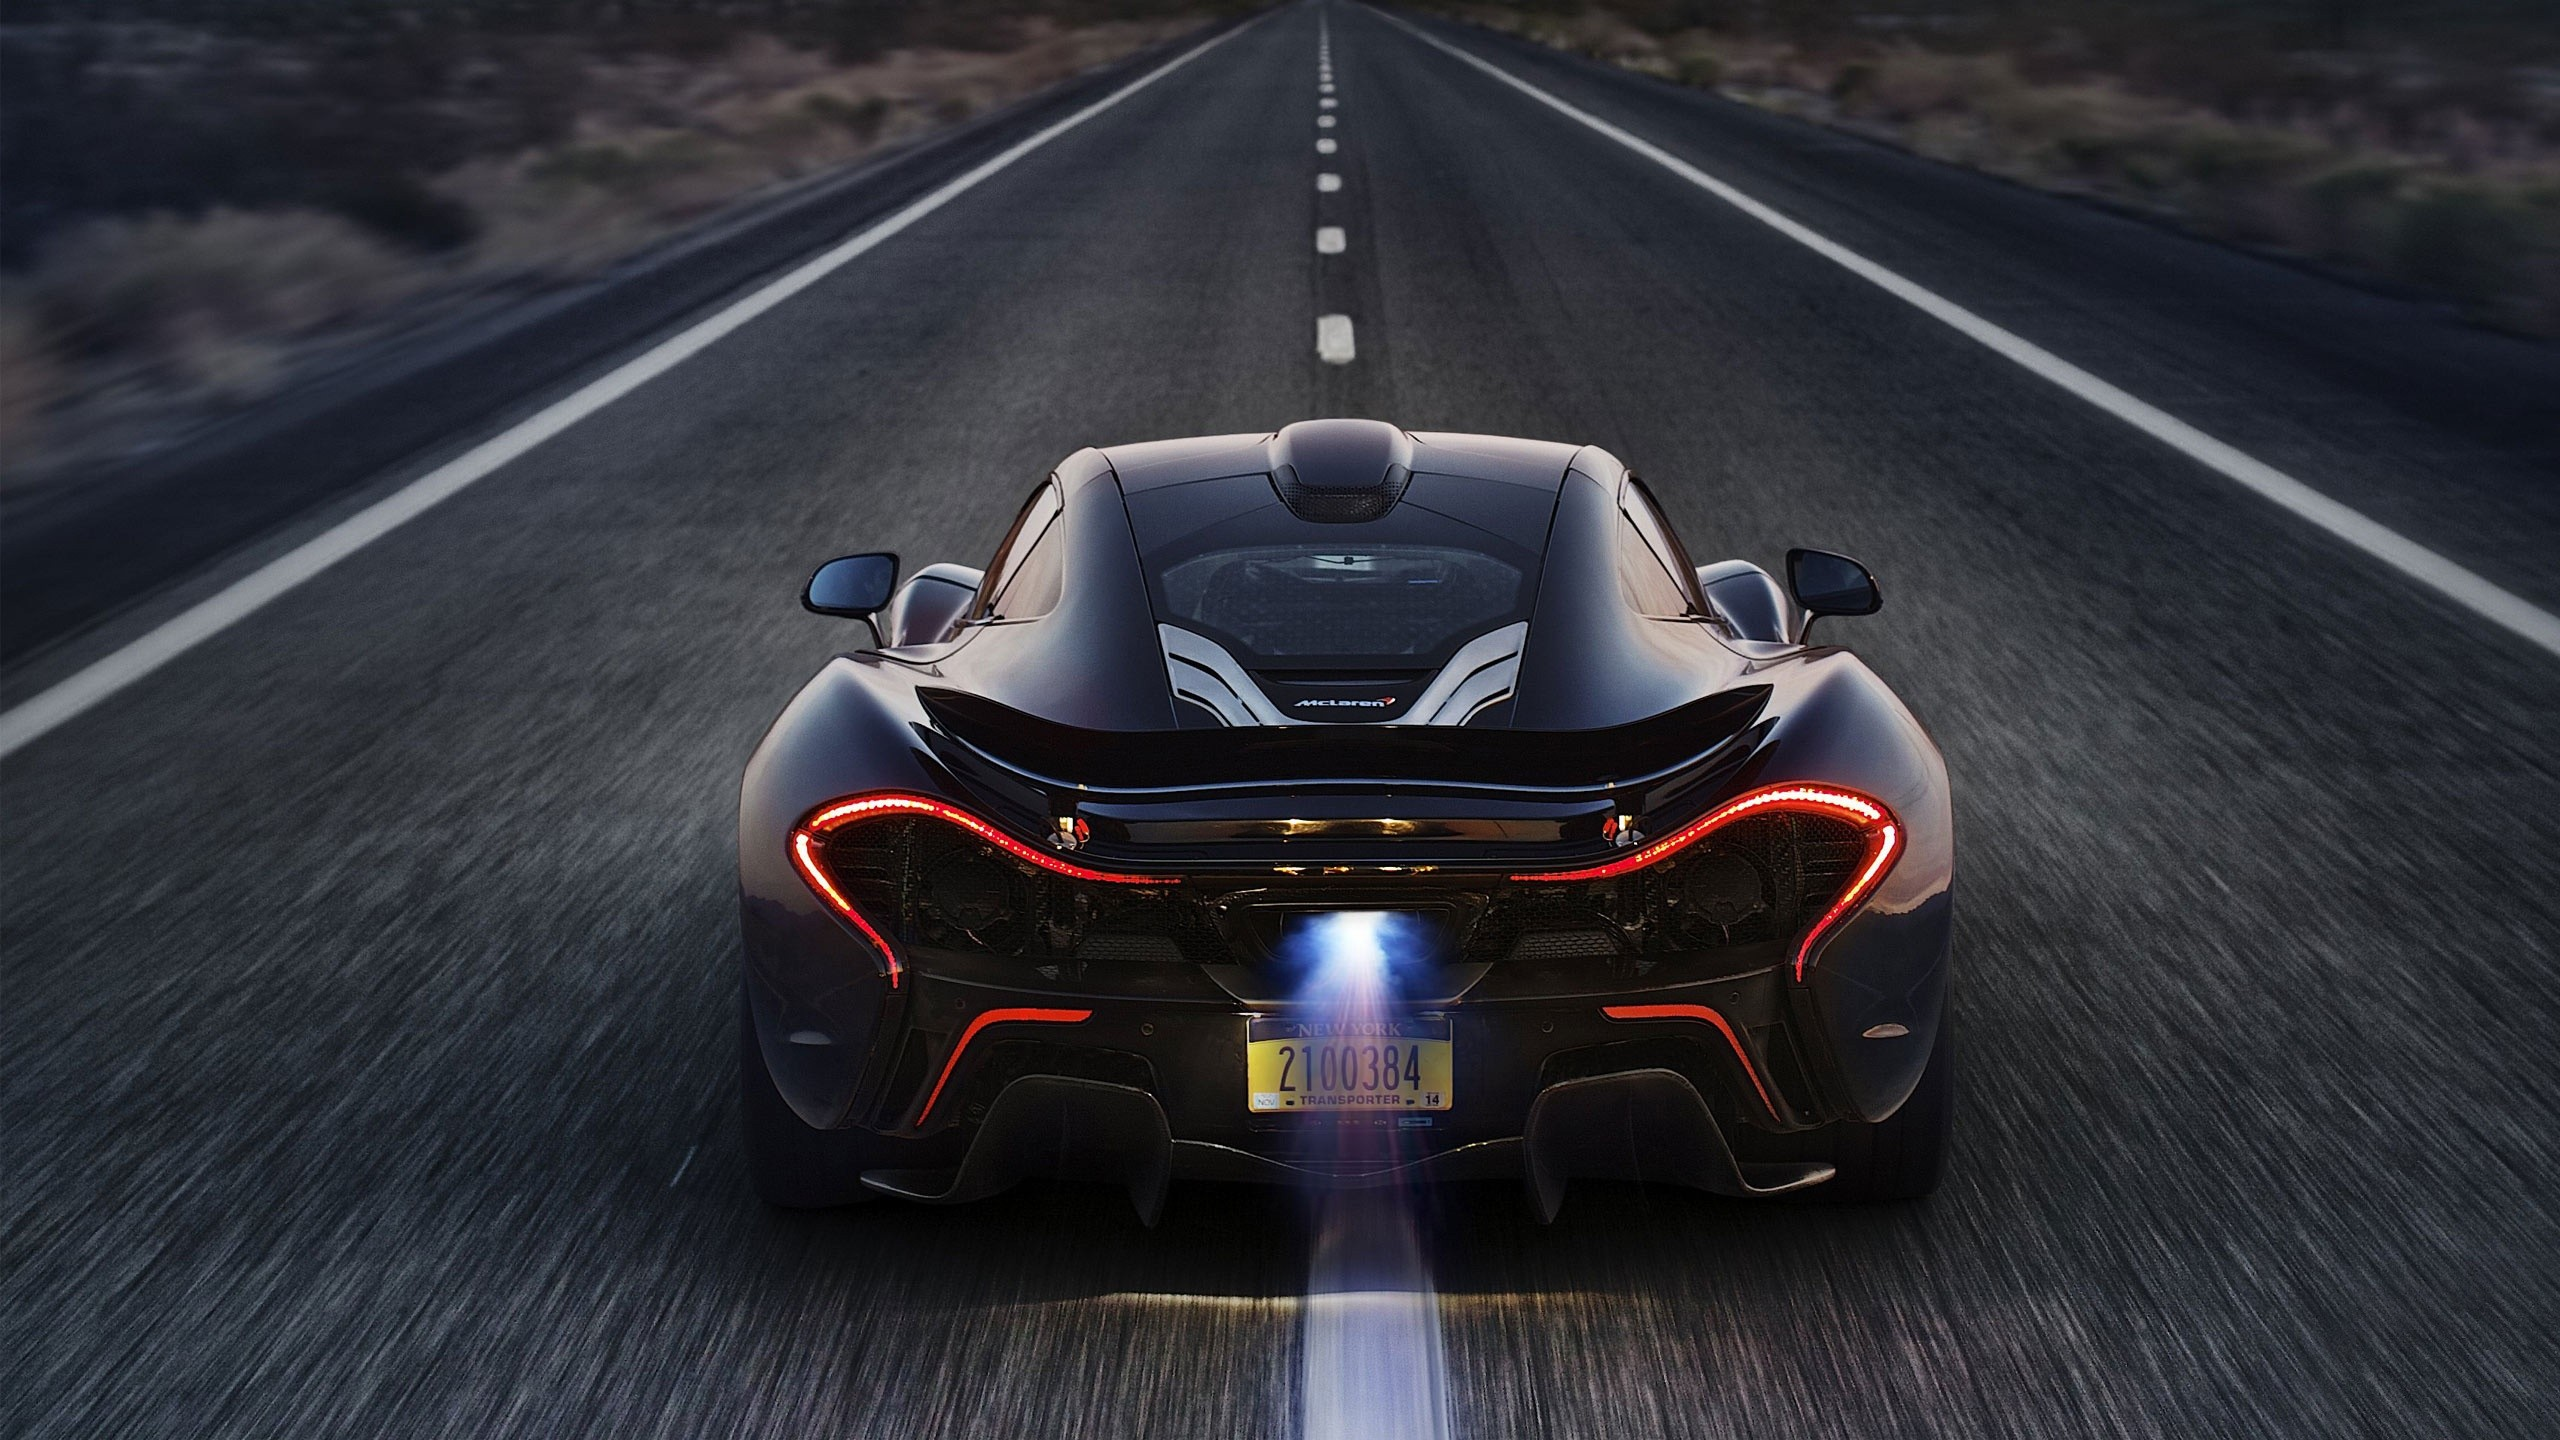 speed triple, mclaren p1, car, nitro - wallpaper #58671 (2560x1440px